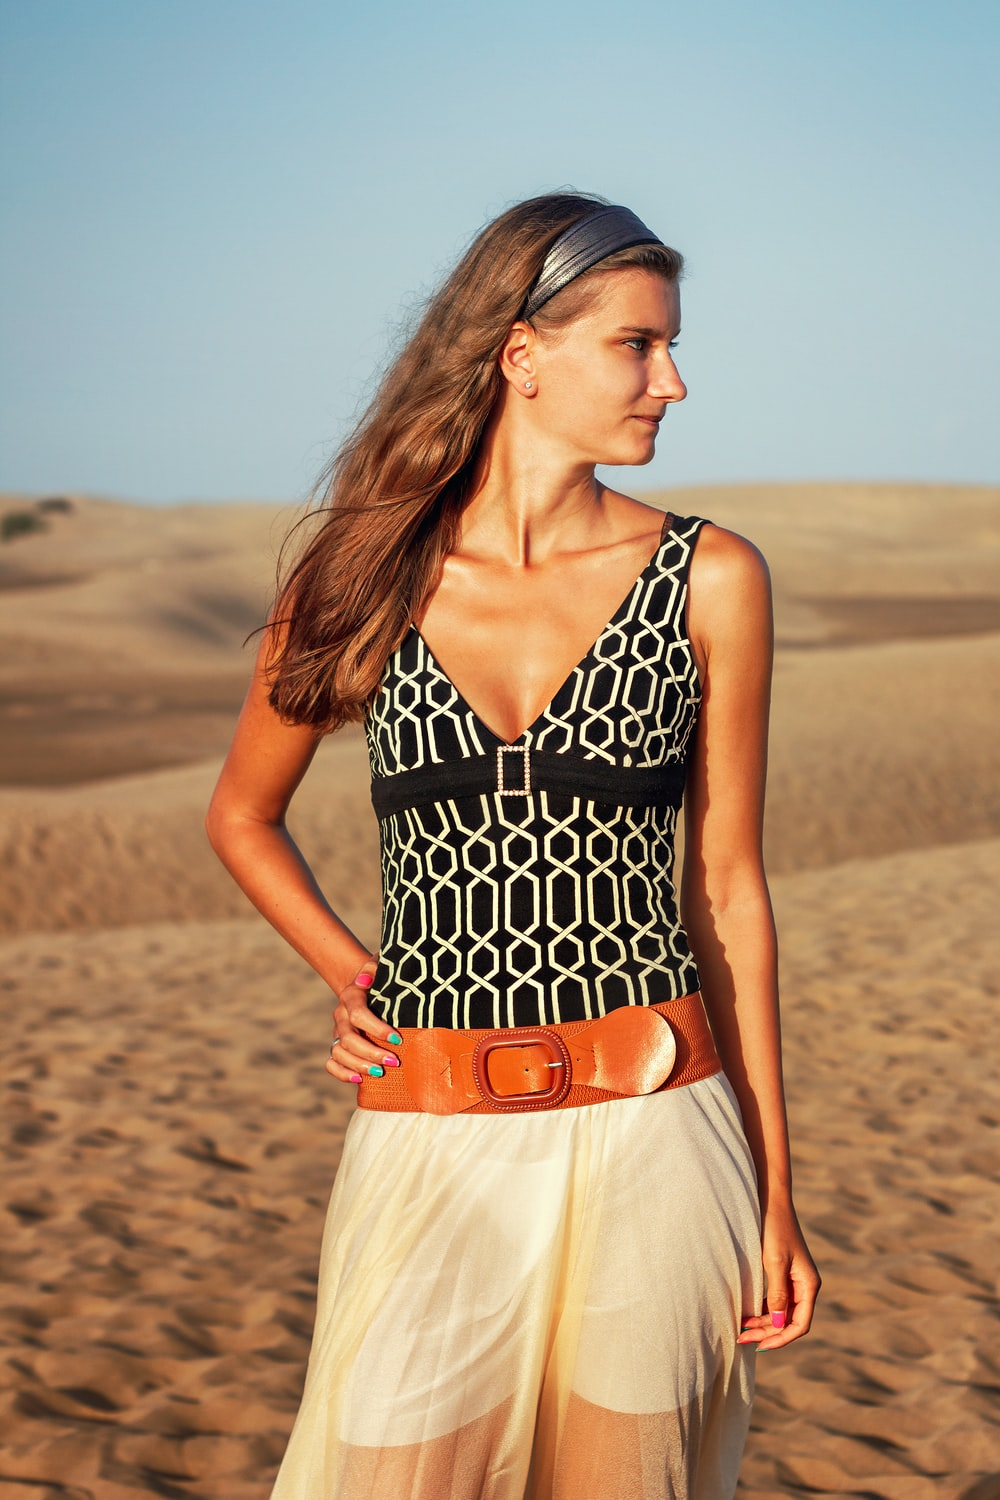 woman in black and white polka dot halter top dress standing on brown sand during daytime